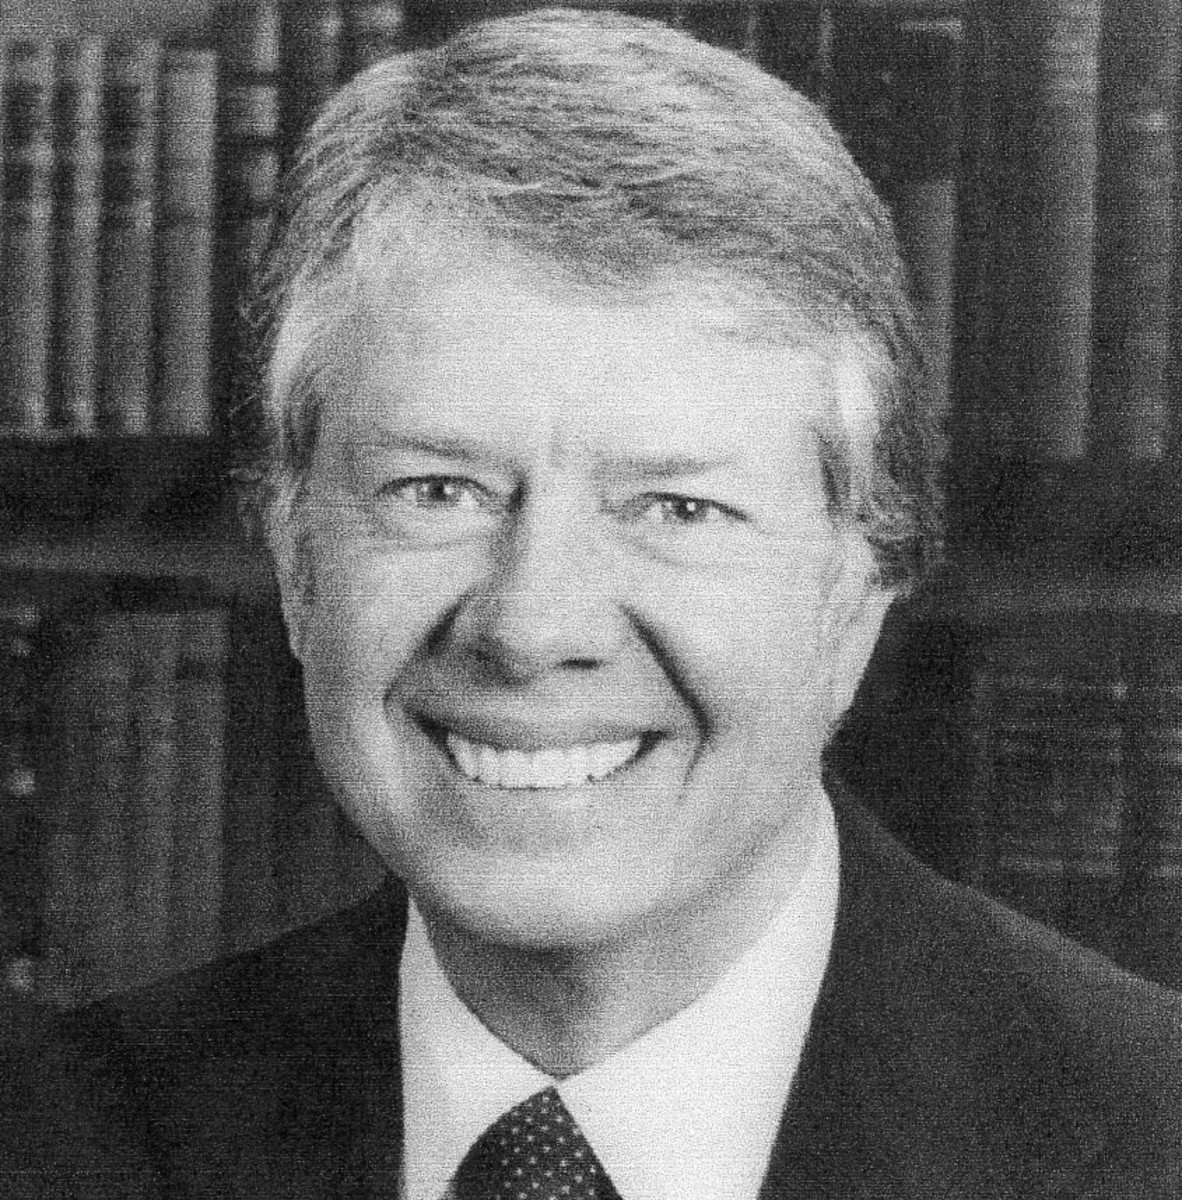 Jimmy Carter, the thirty-ninth president, Democrat, 1977-1981